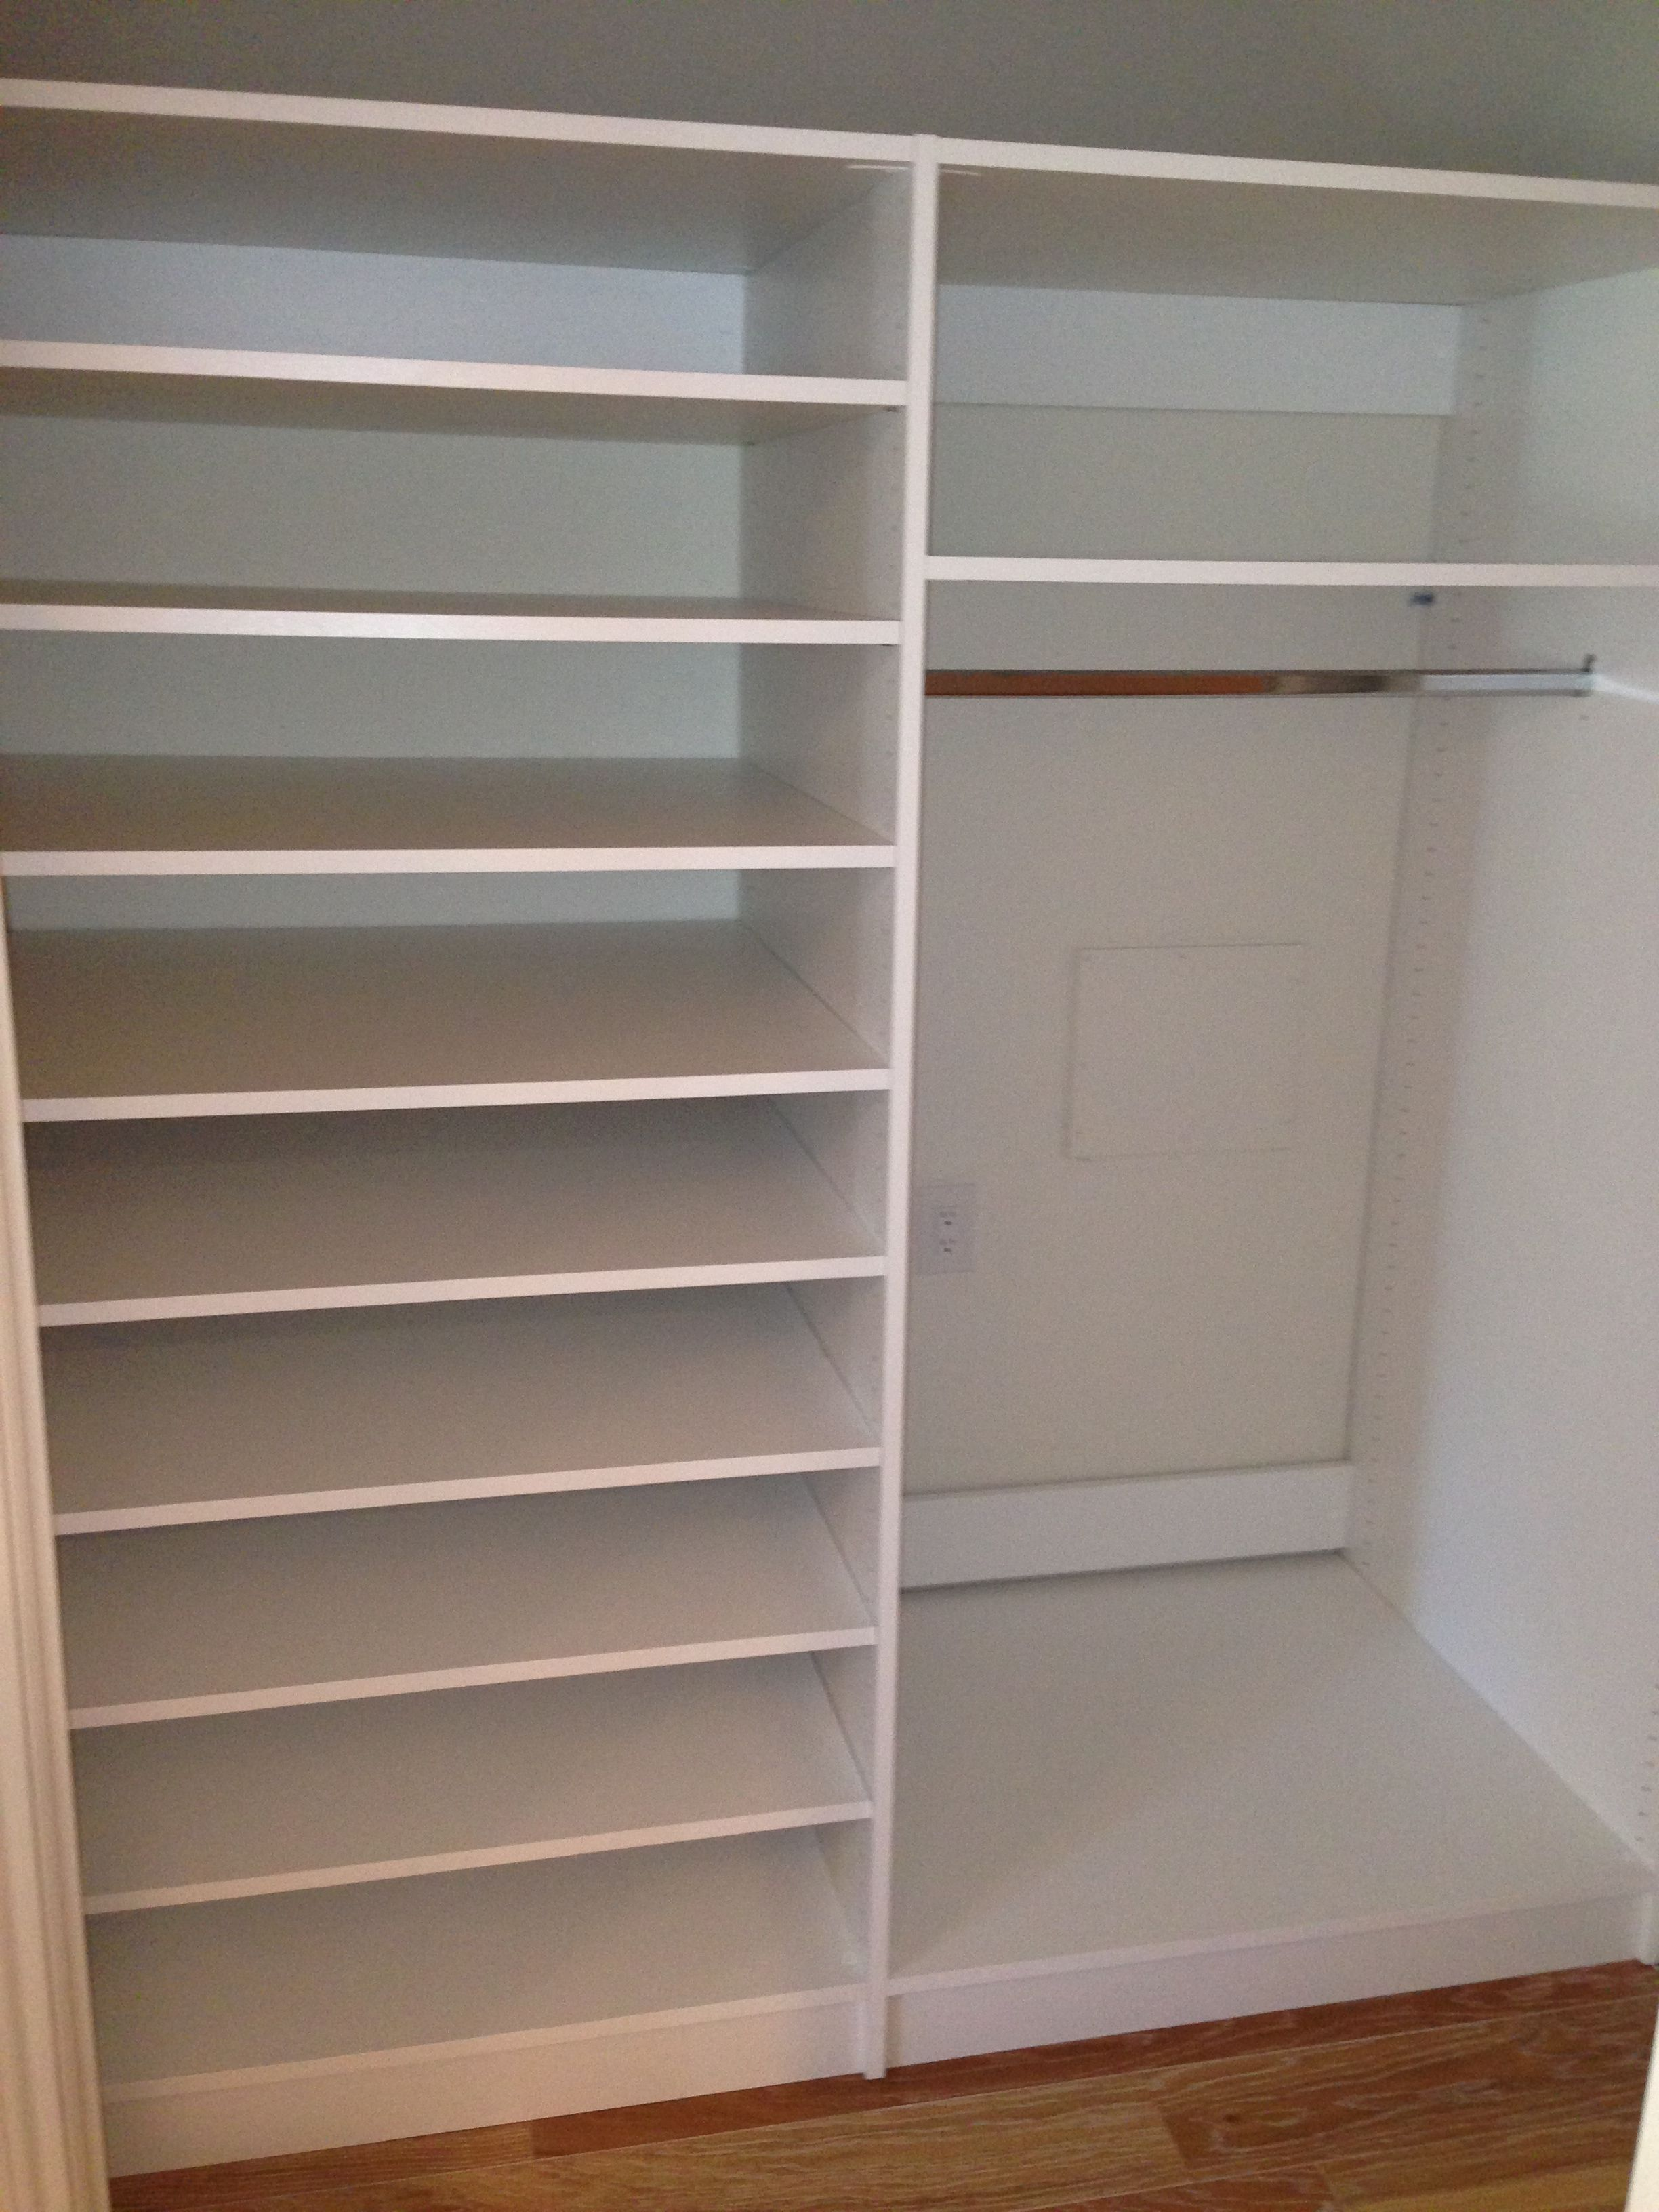 White Melamine, Deeper Panels In Small Storage Closet. Deeper Shelves For  Linen Storage.